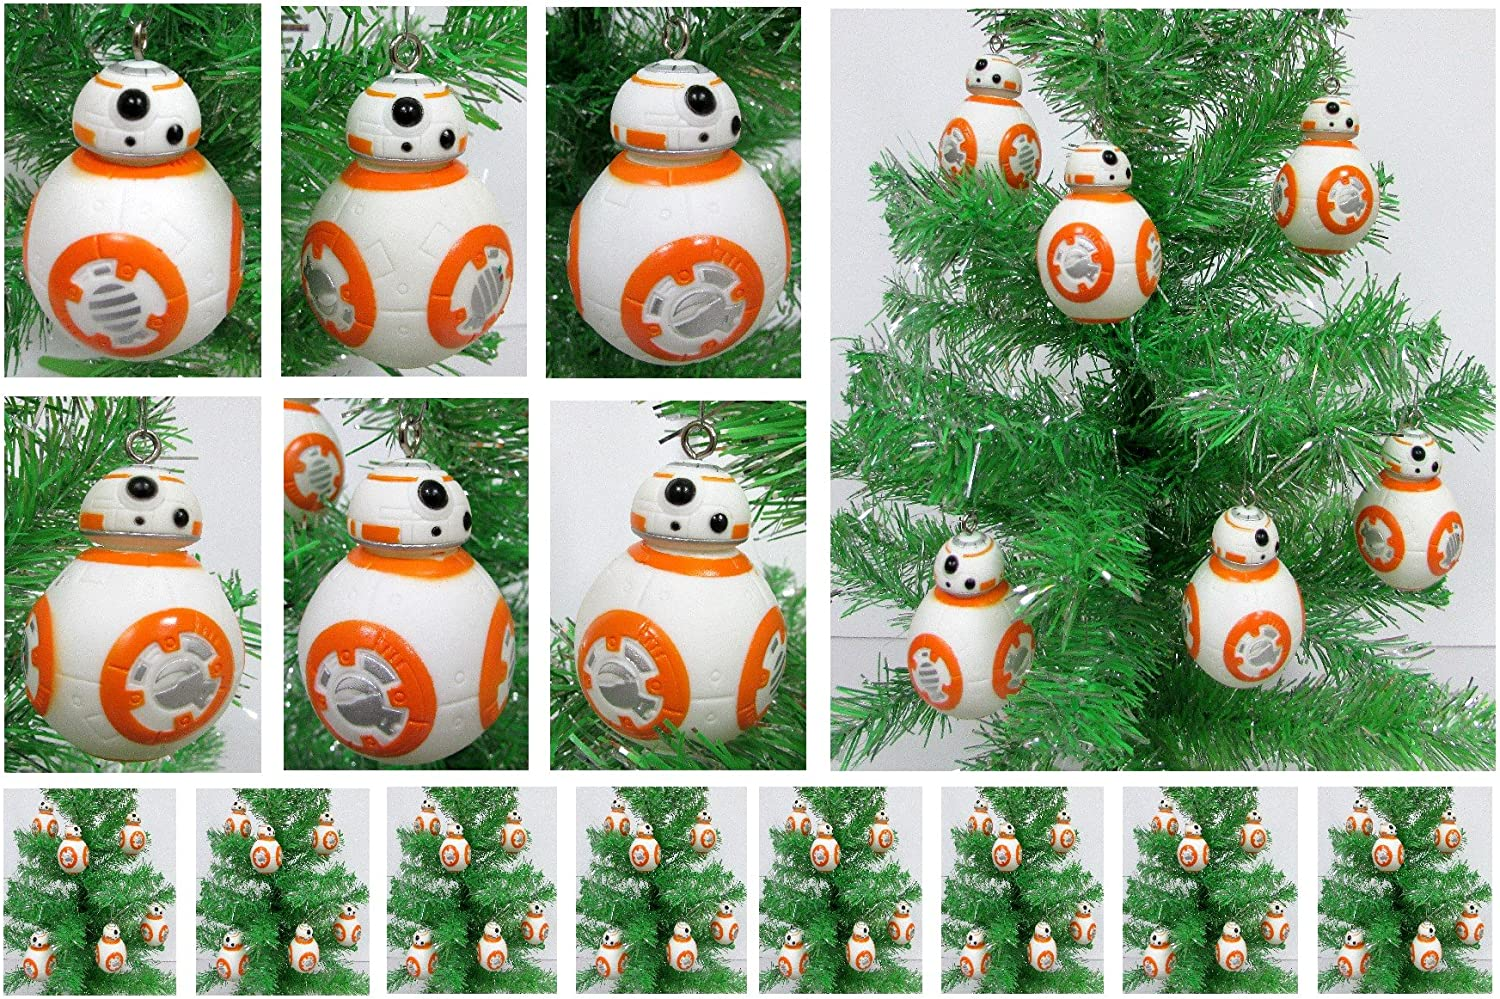 STAR WARS BB8 Set of 6 Christmas Tree Ornaments  Shatterproof Plastic Design Around 3  Tall